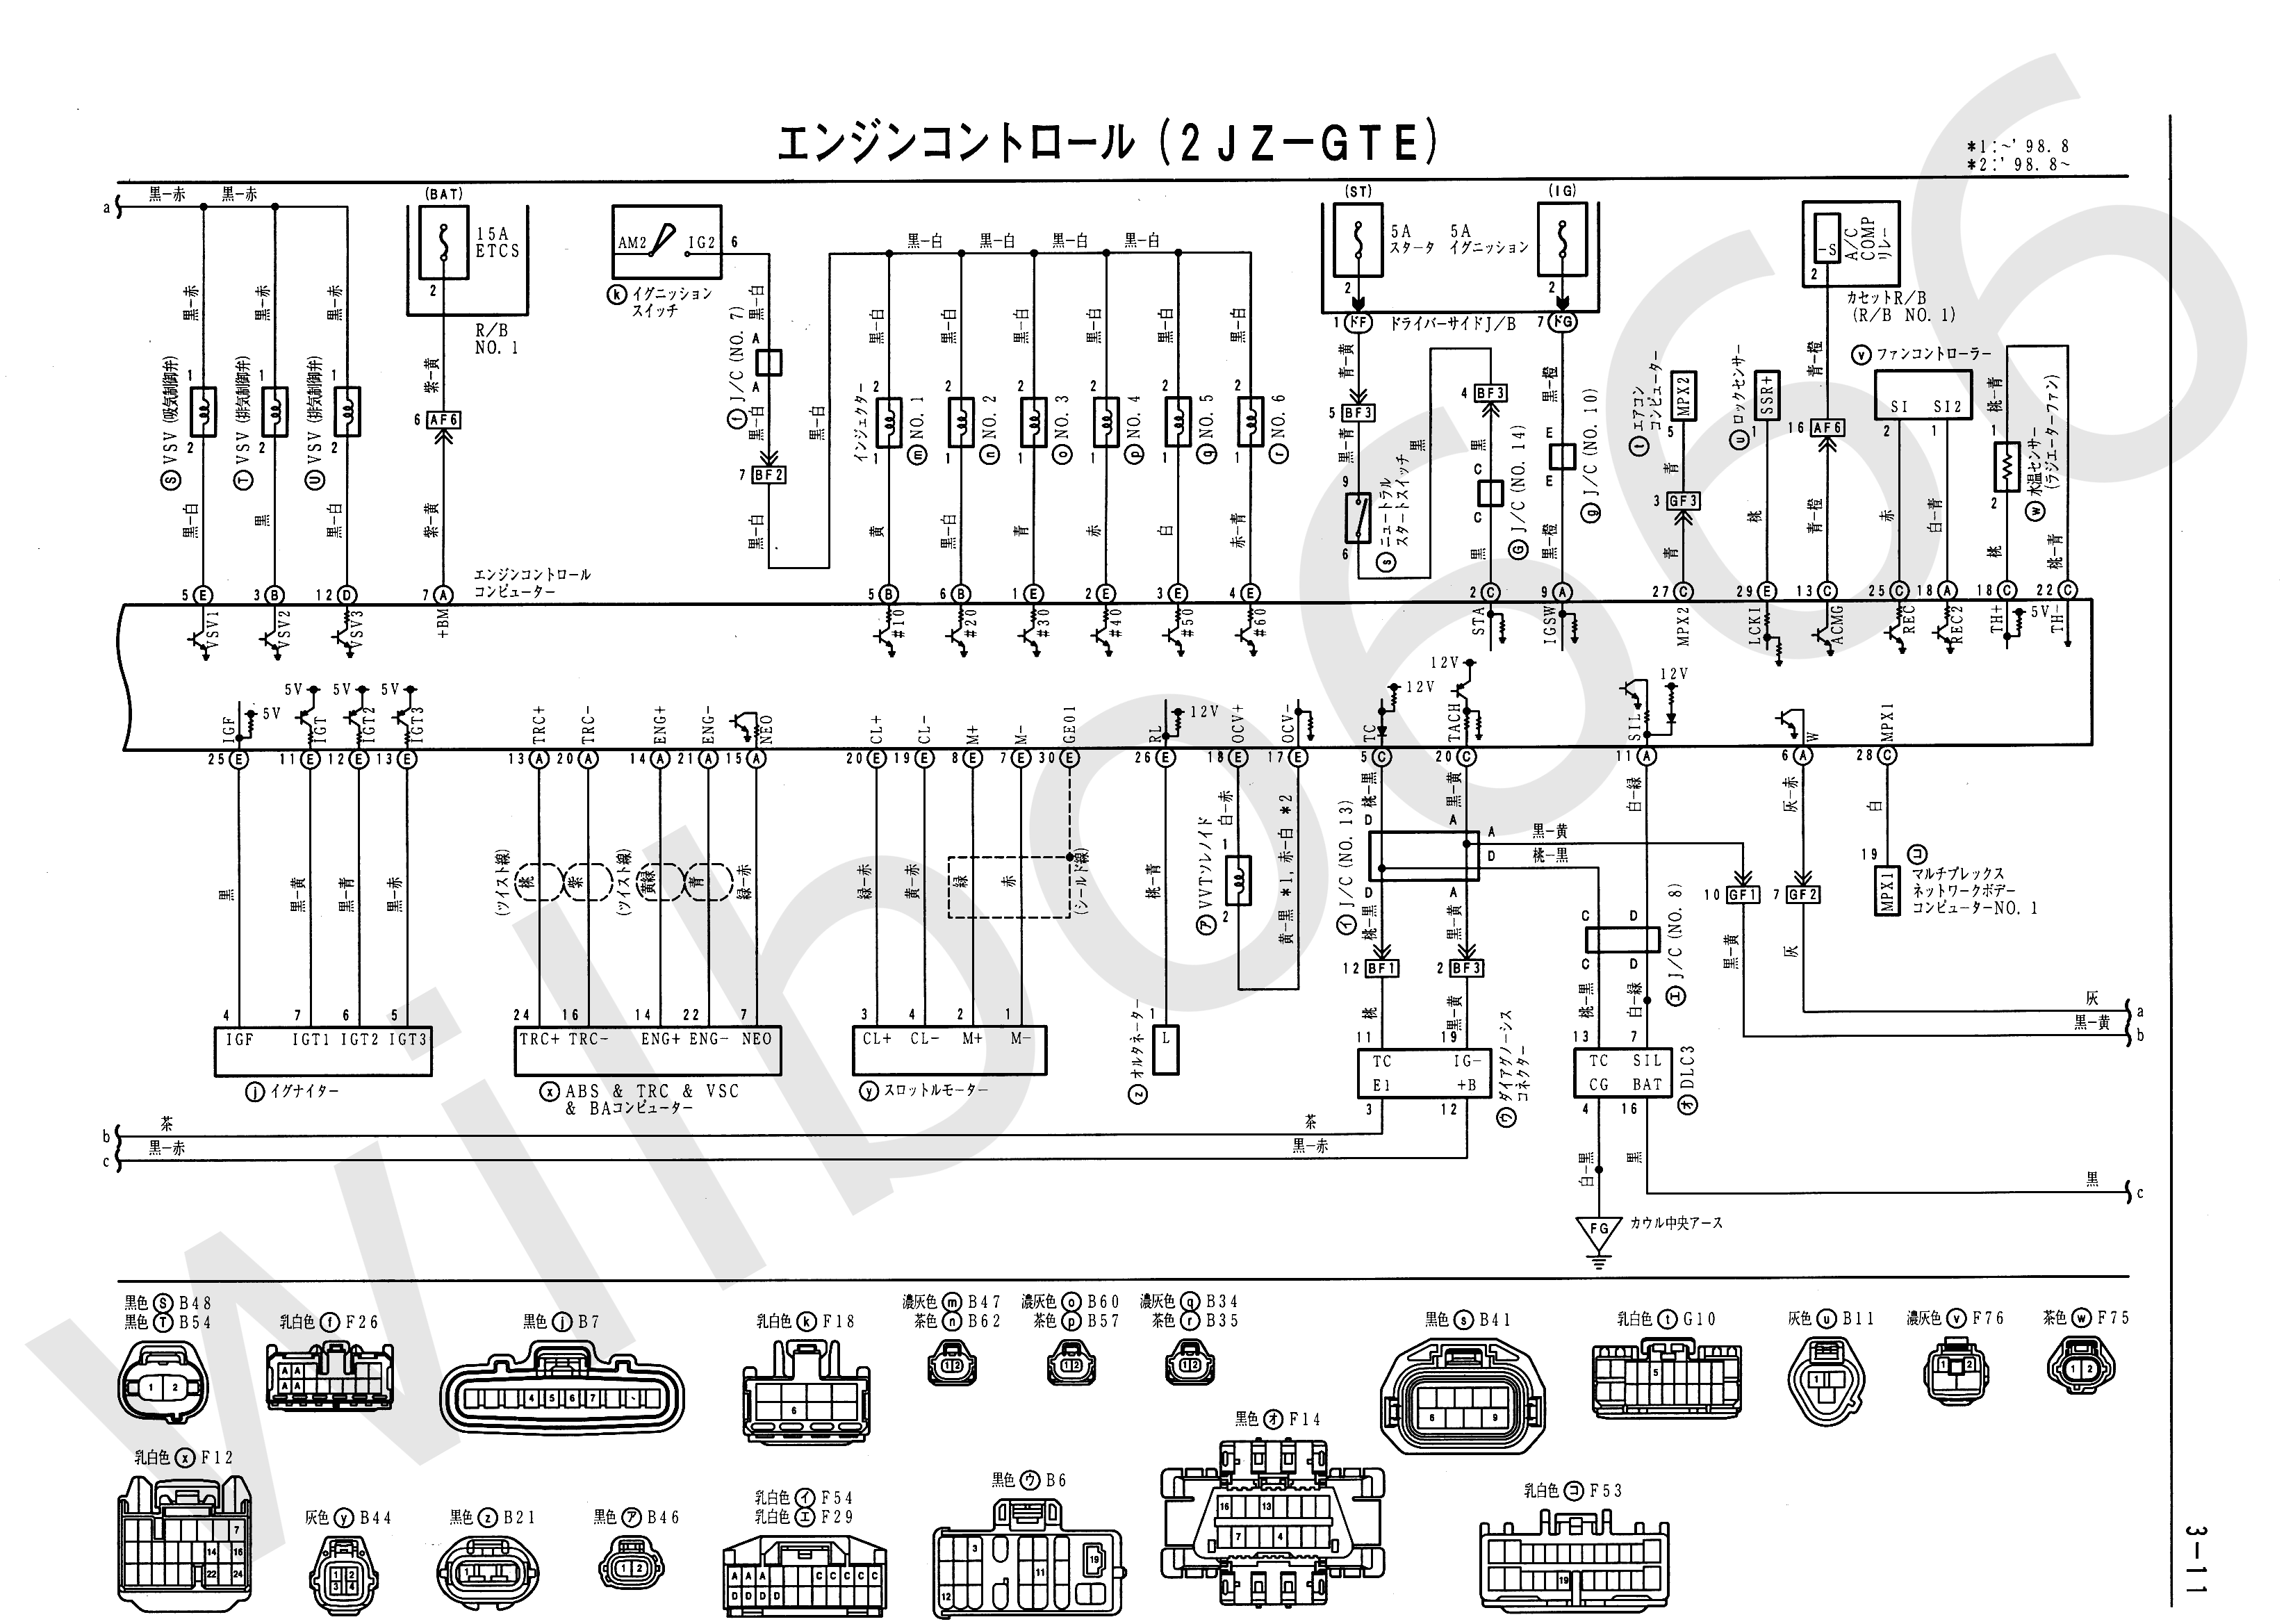 JZS161 Electrical Wiring Diagram 6748505 3 11 wilbo666 2jz gte vvti jzs161 aristo engine wiring  at readyjetset.co